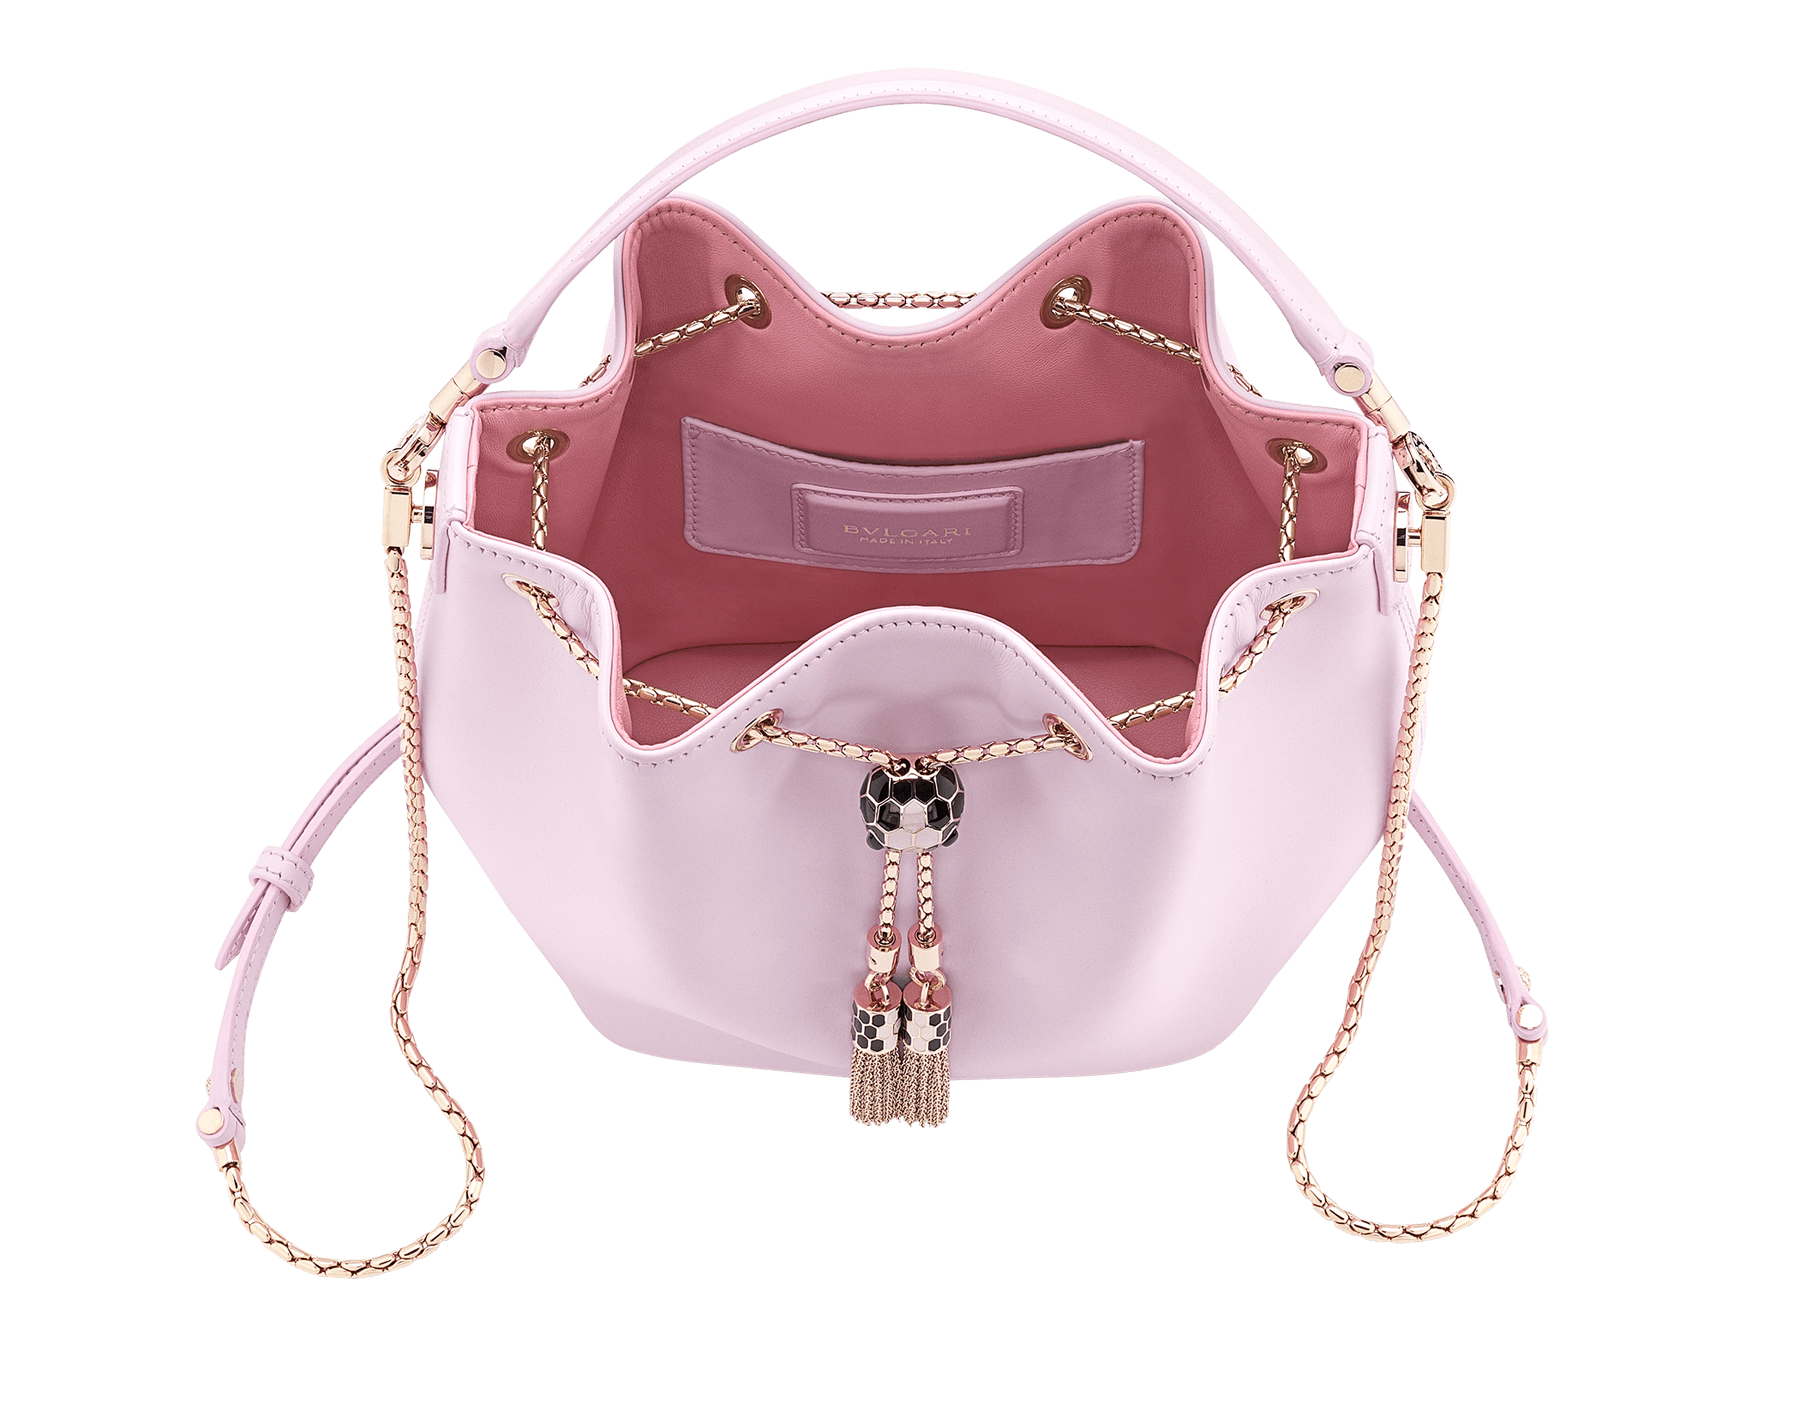 Serpenti Forever bucket in rosa di francia smooth calf leather and a flamingo quartz inner lining. Hardware in light gold plated brass and snakehead closure in black and white enamel, with eyes in black onyx. 288769 image 4